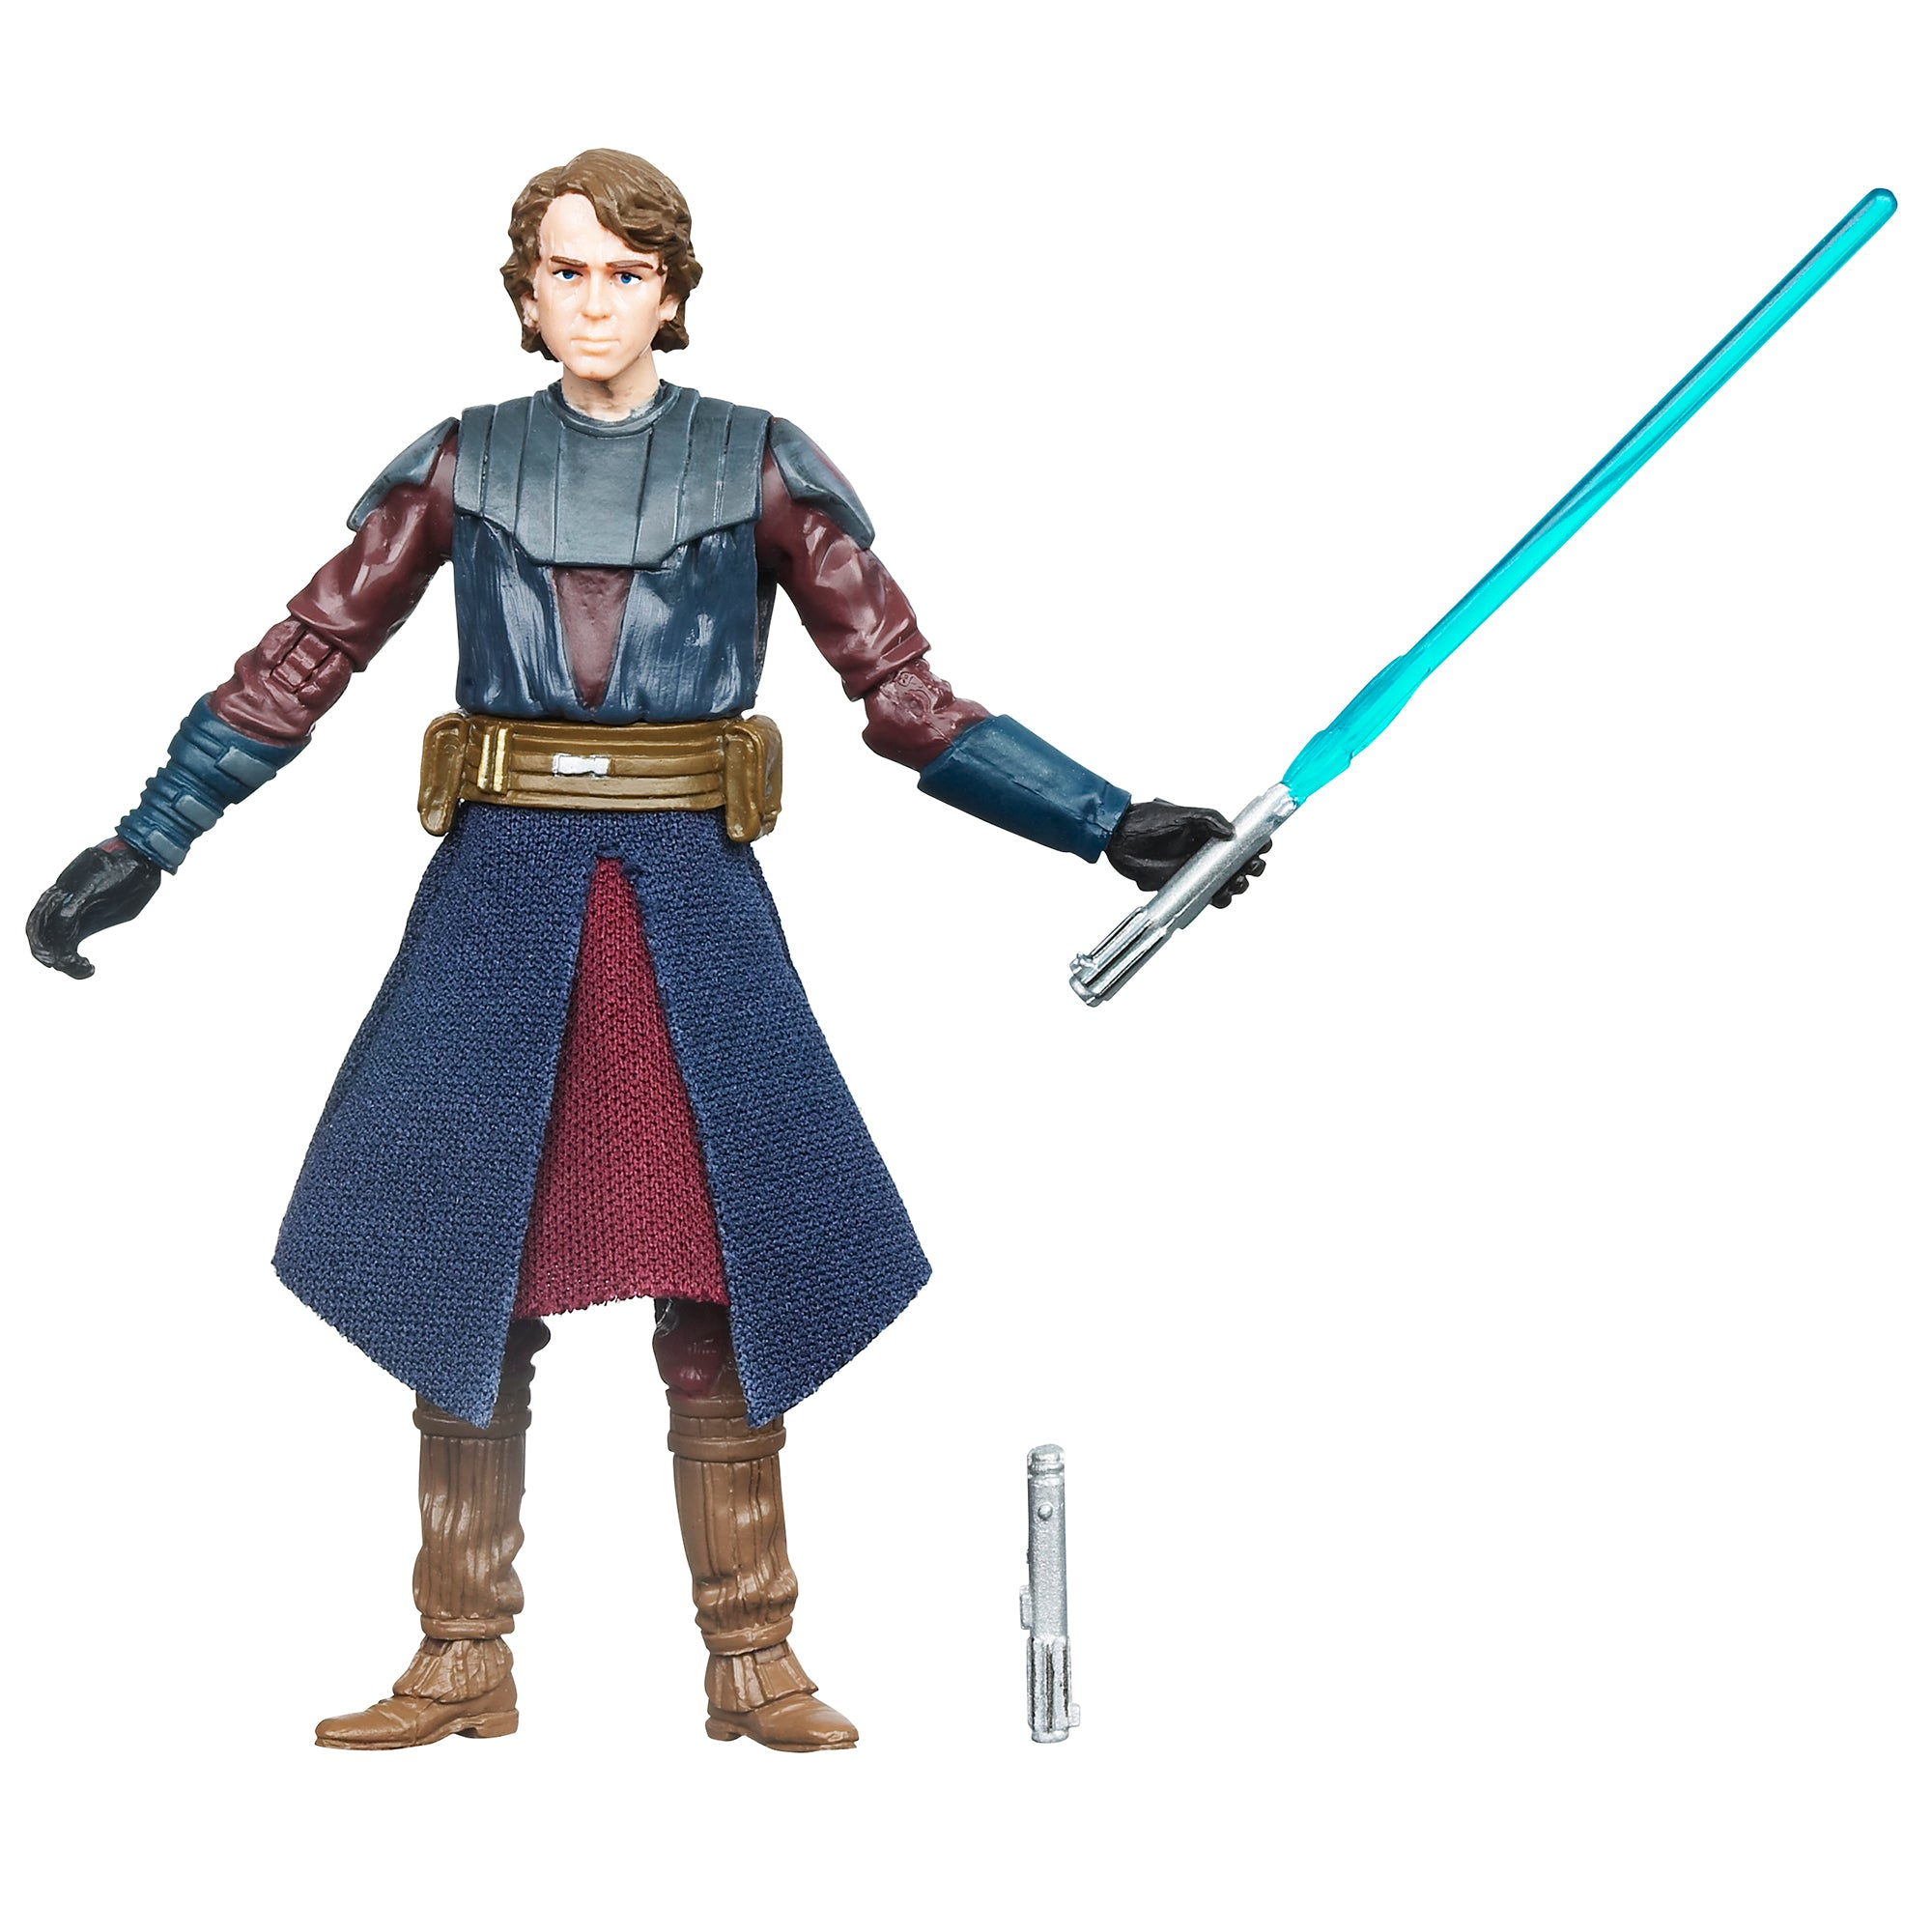 Star Wars The Vintage Collection Anakin Skywalker